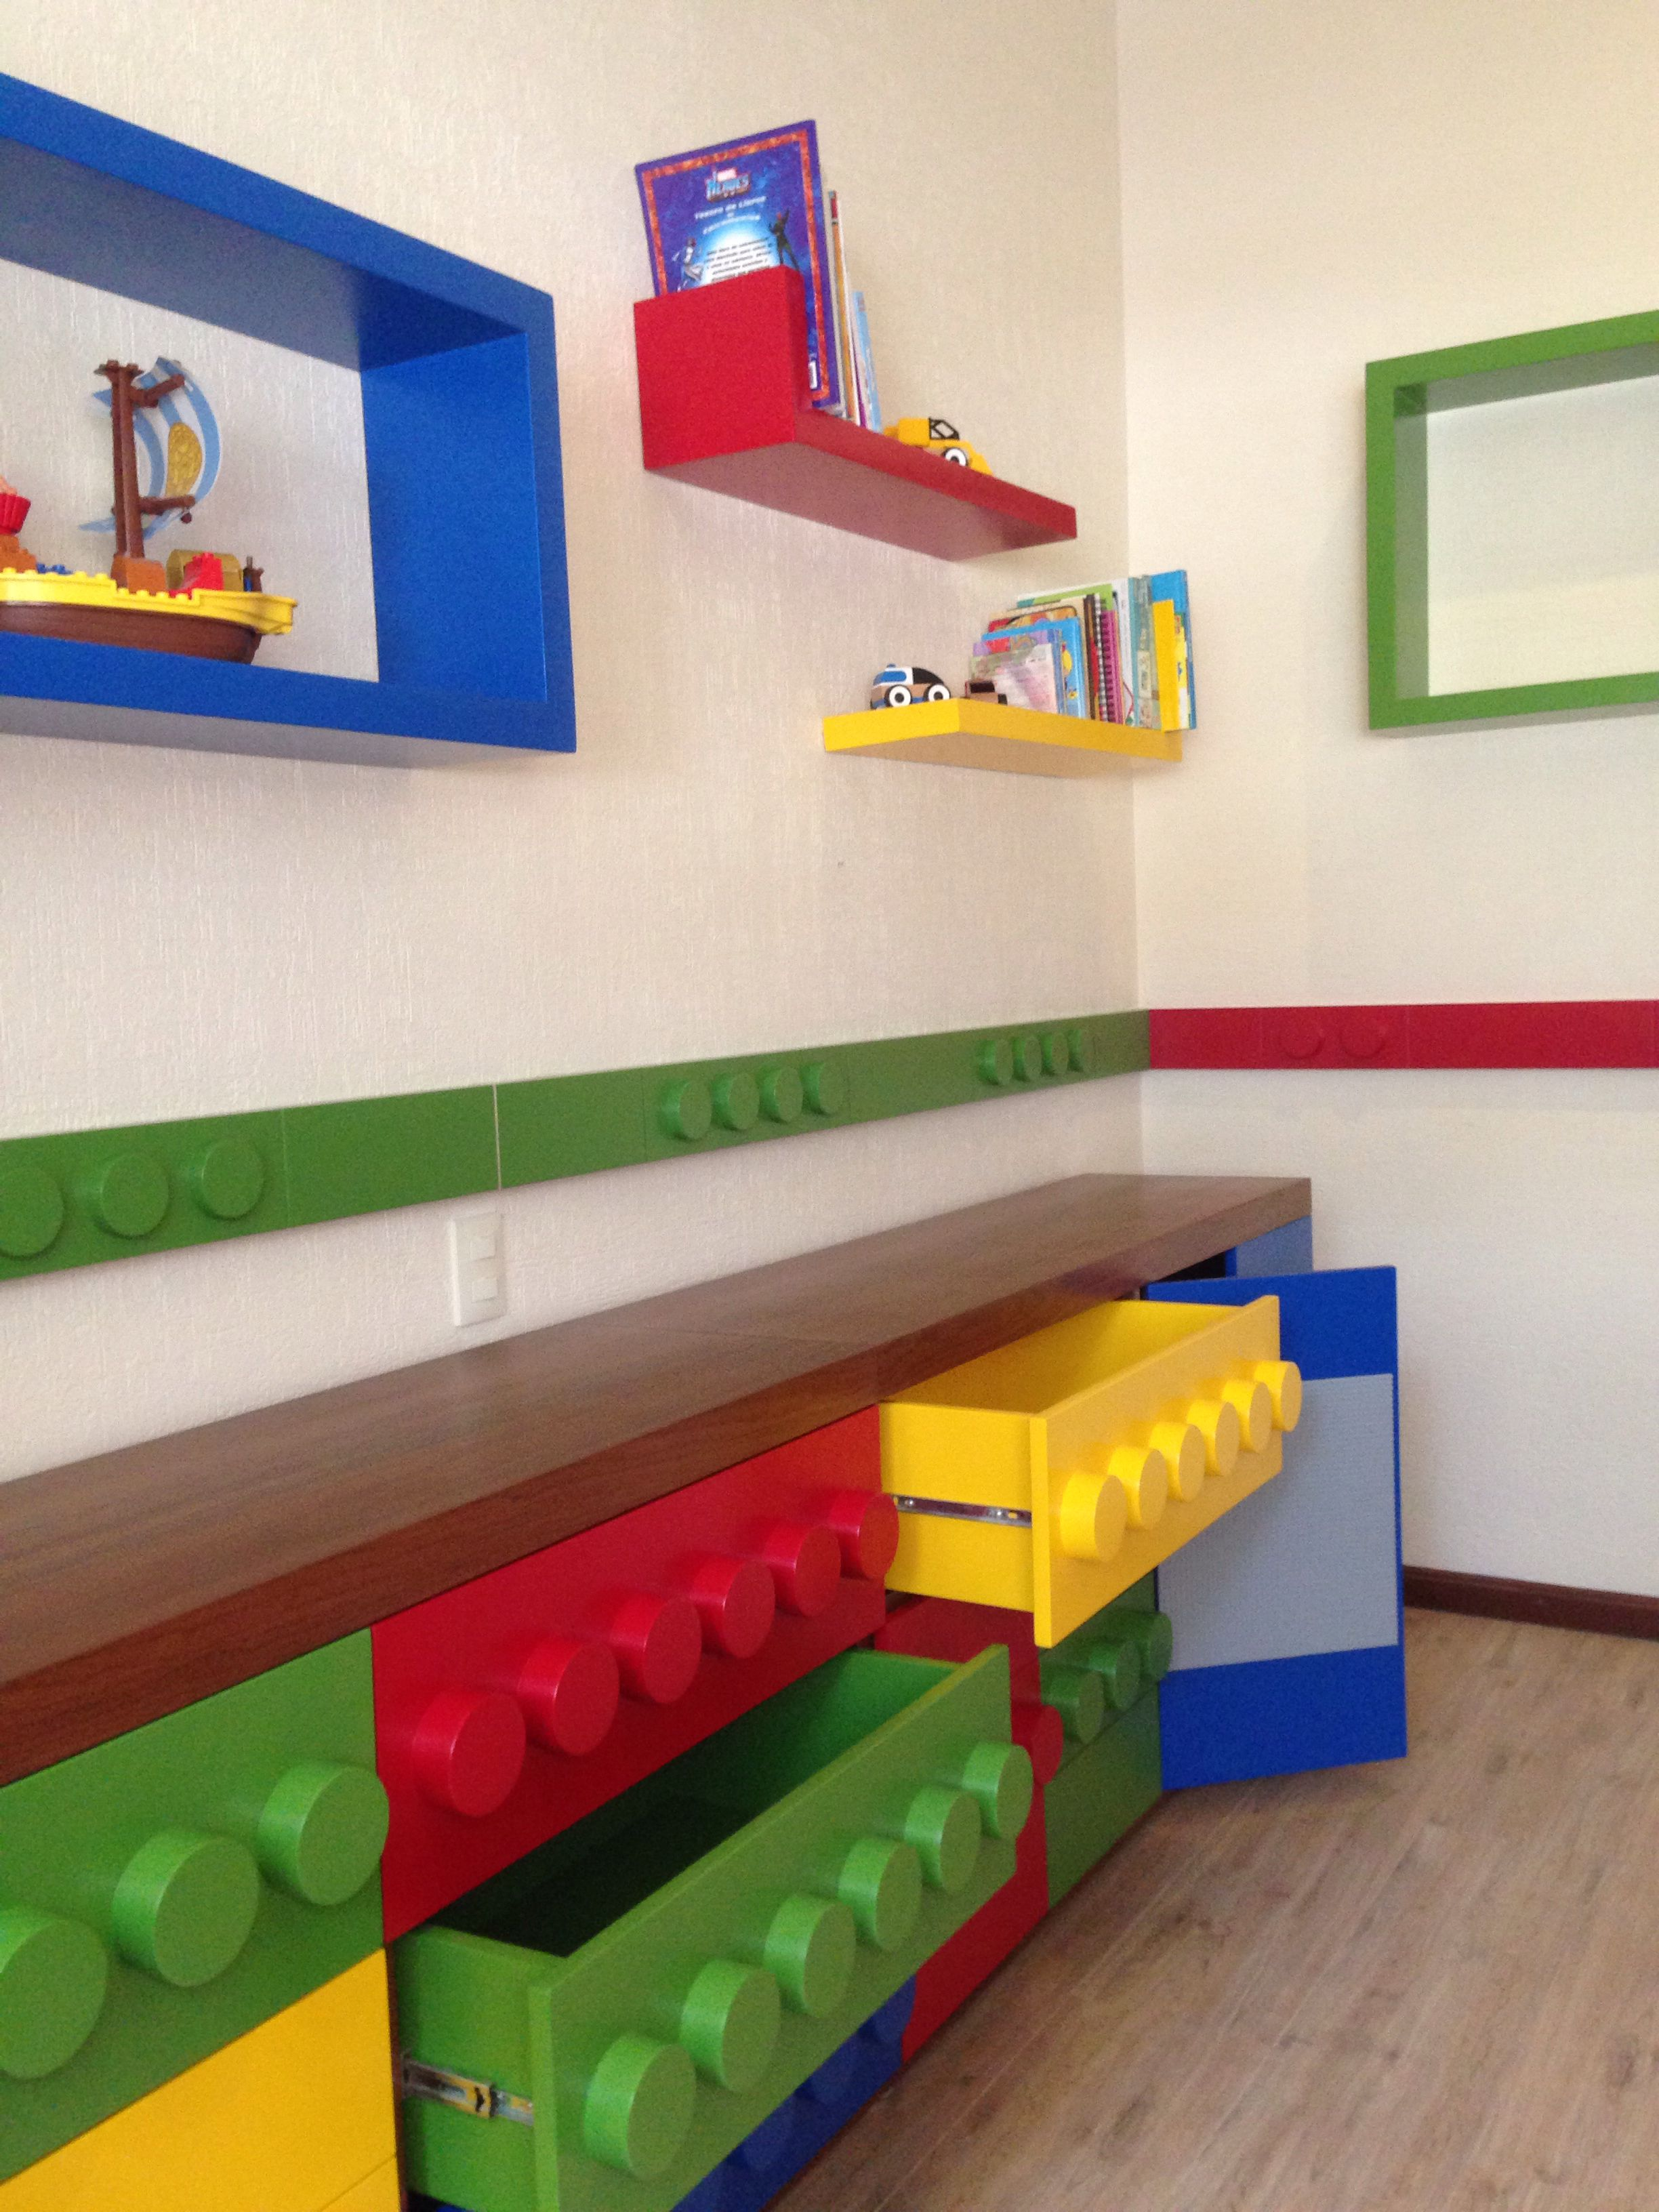 Cuarto de lego cool my job pinterest legos for Decoracion hogares infantiles